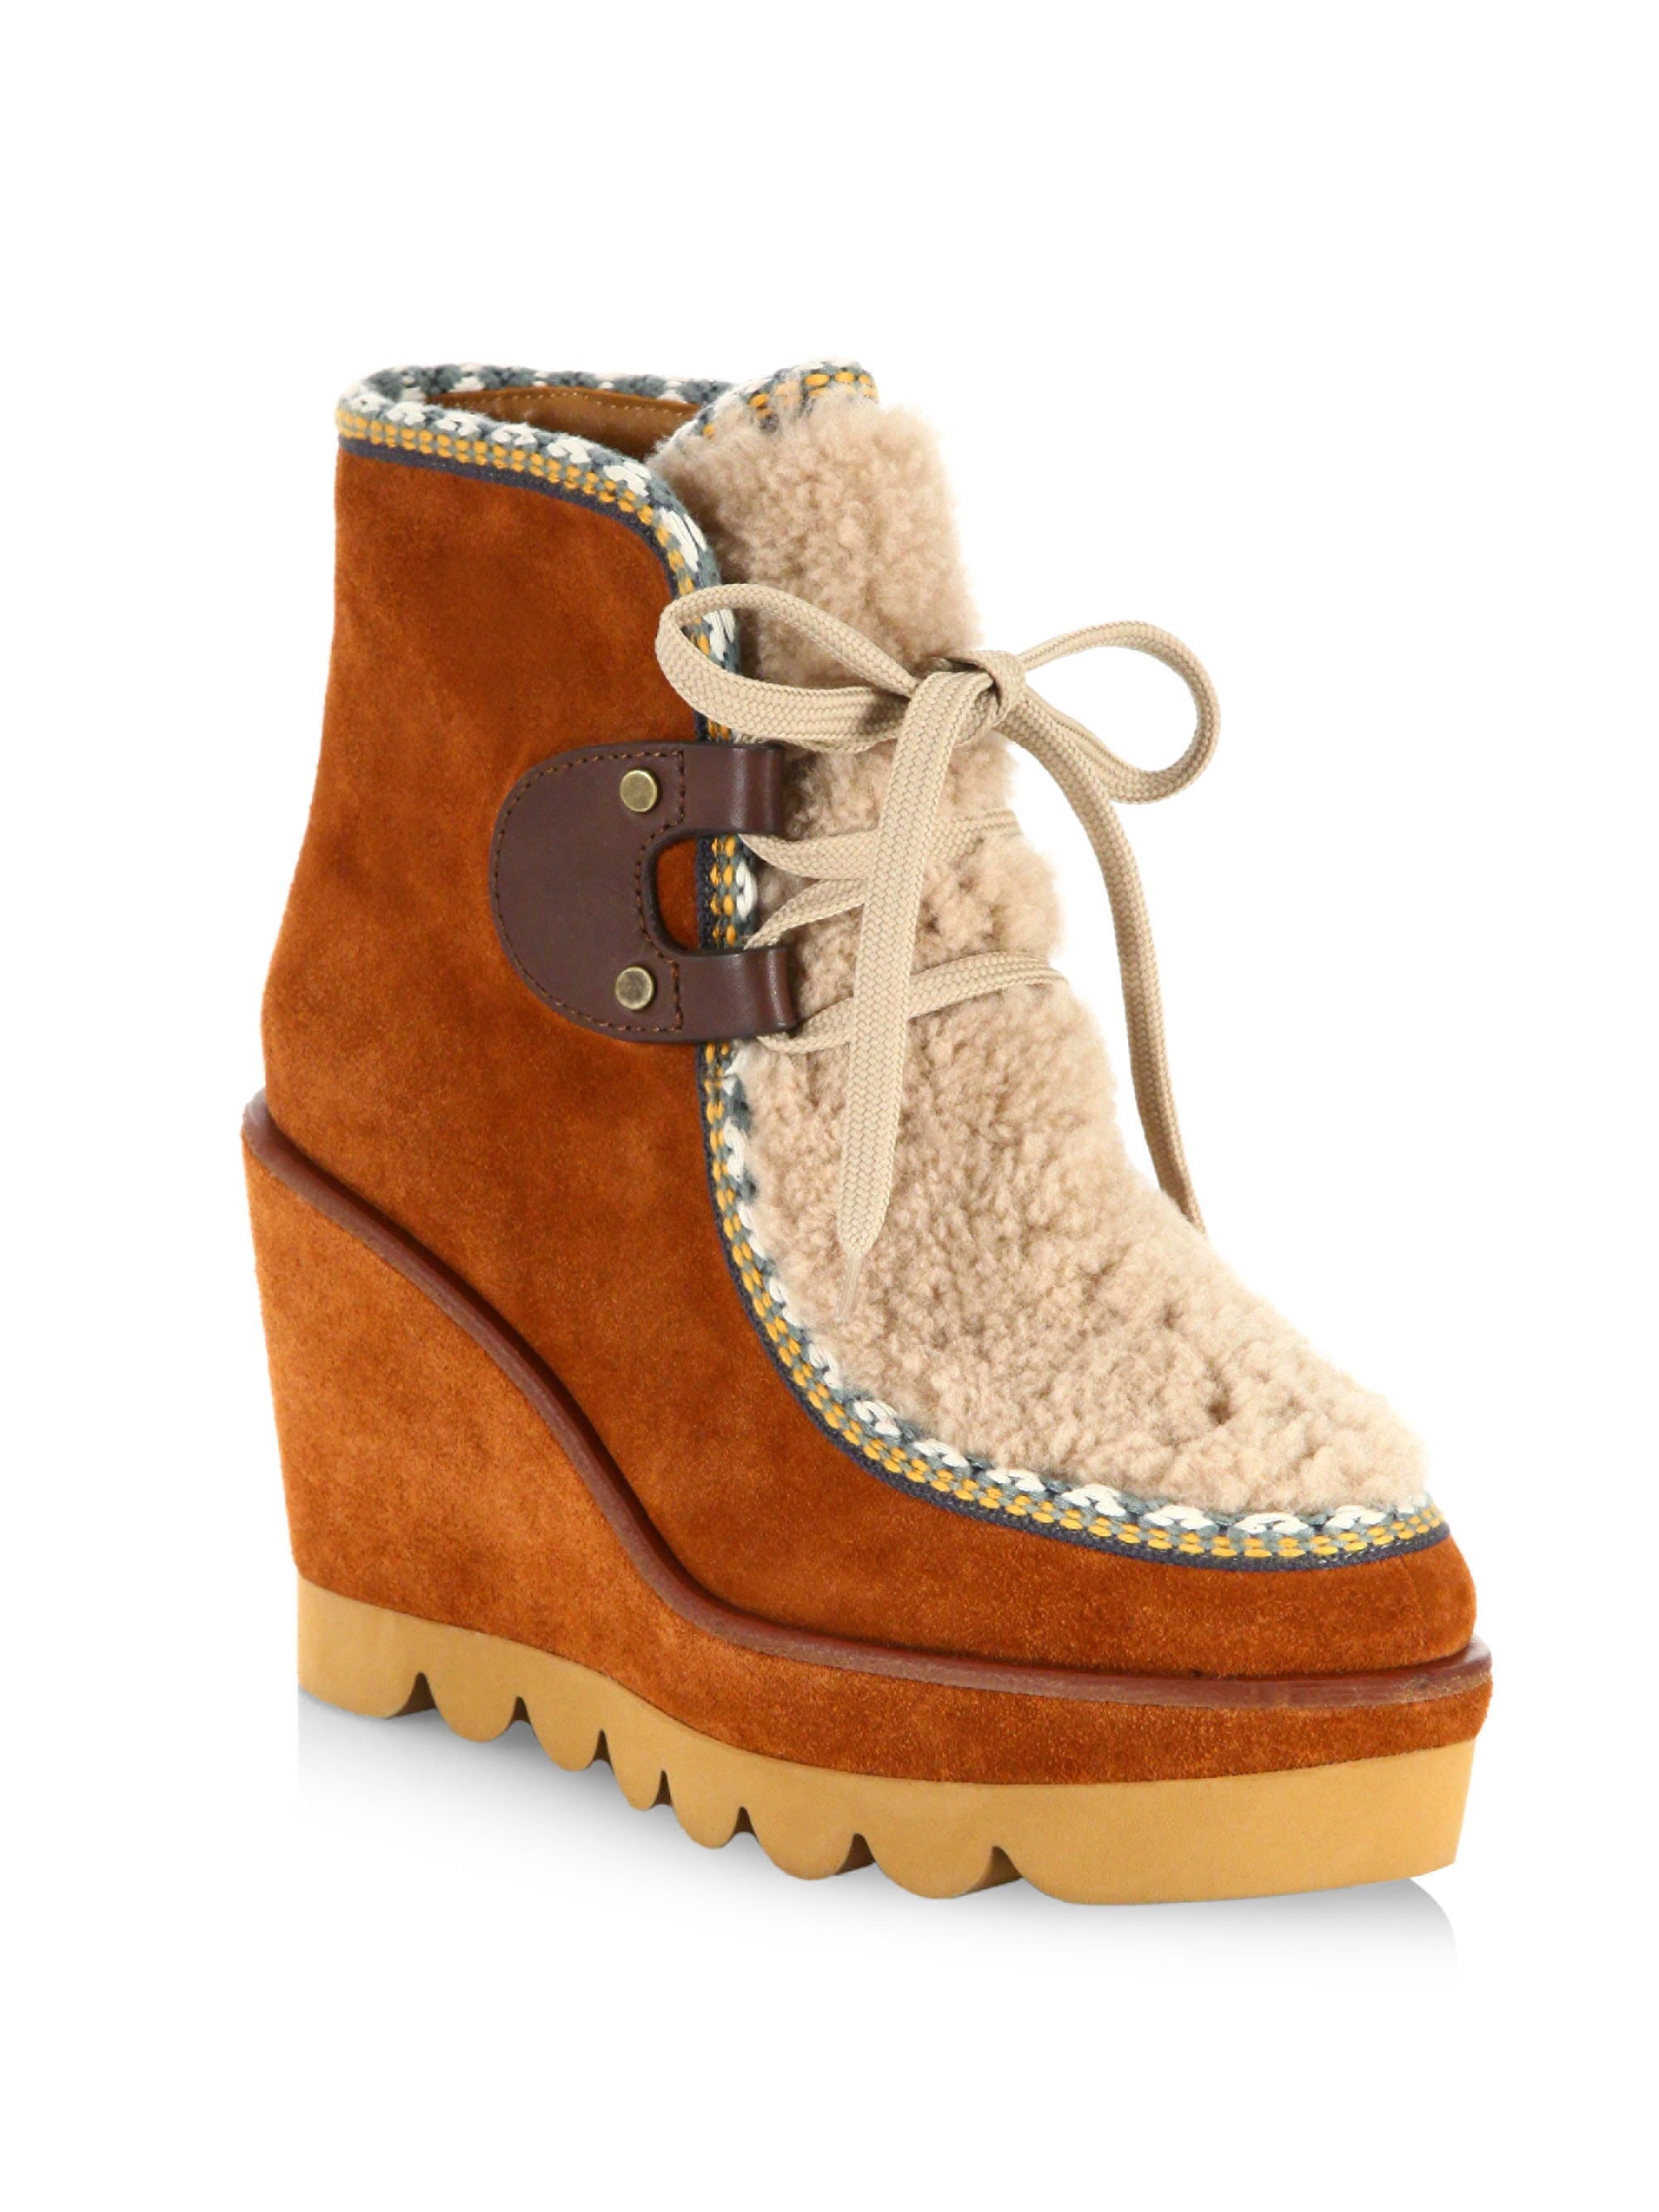 d7f50dcf76c Klaudia Shearling & Suede Wedge Booties by SEE BY CHLOÉ | Products ...